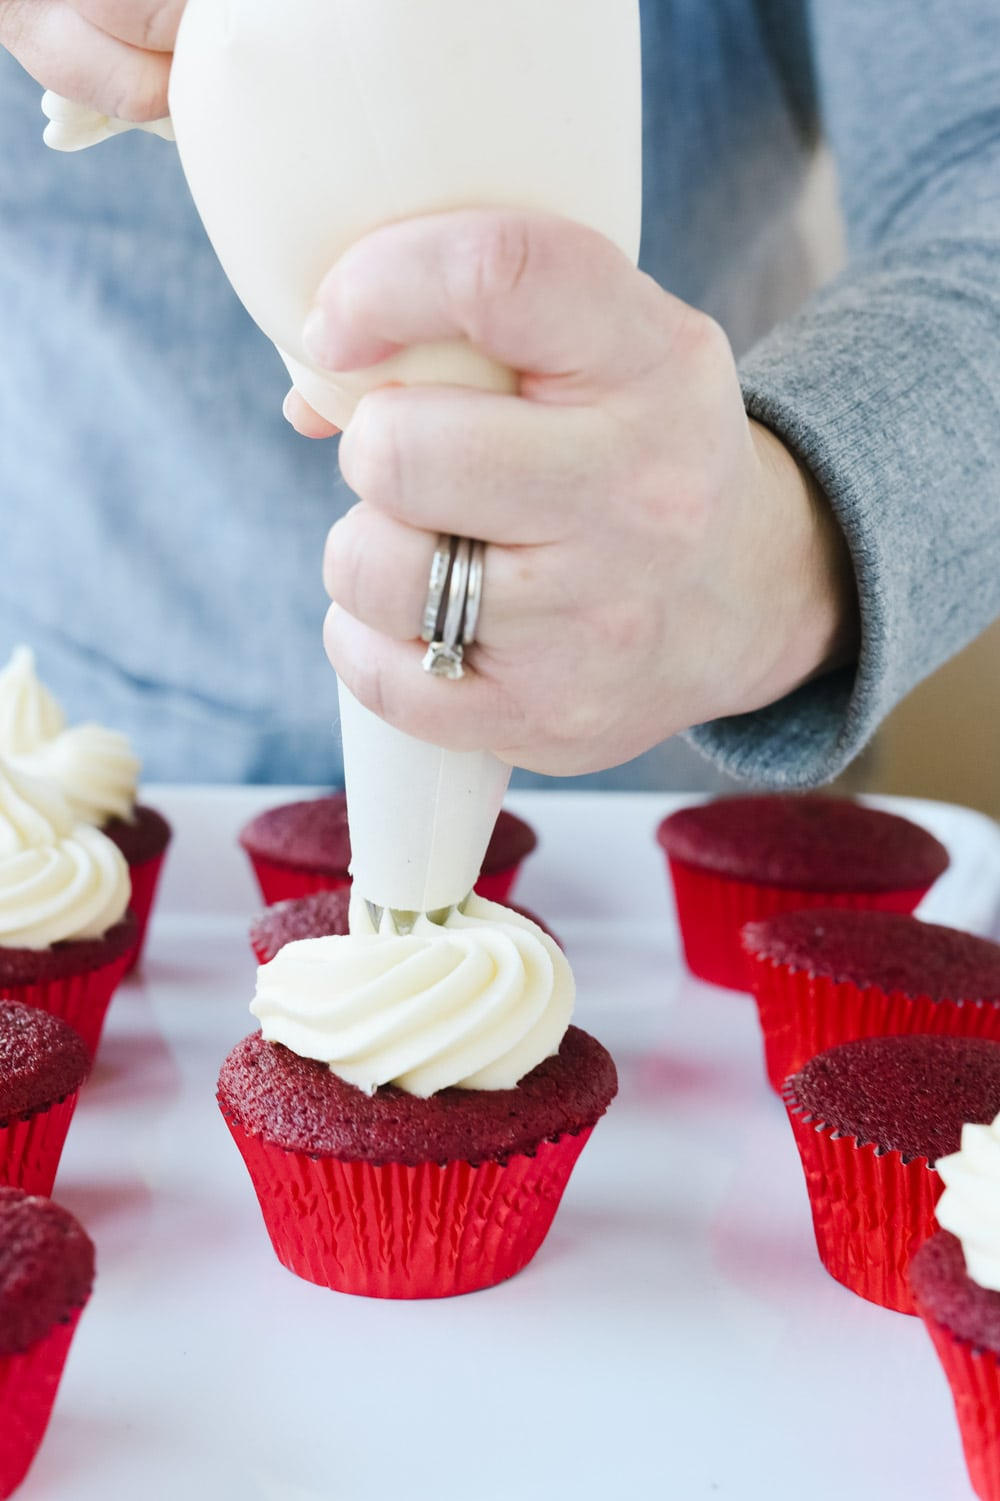 frosting a red velvet cupcake